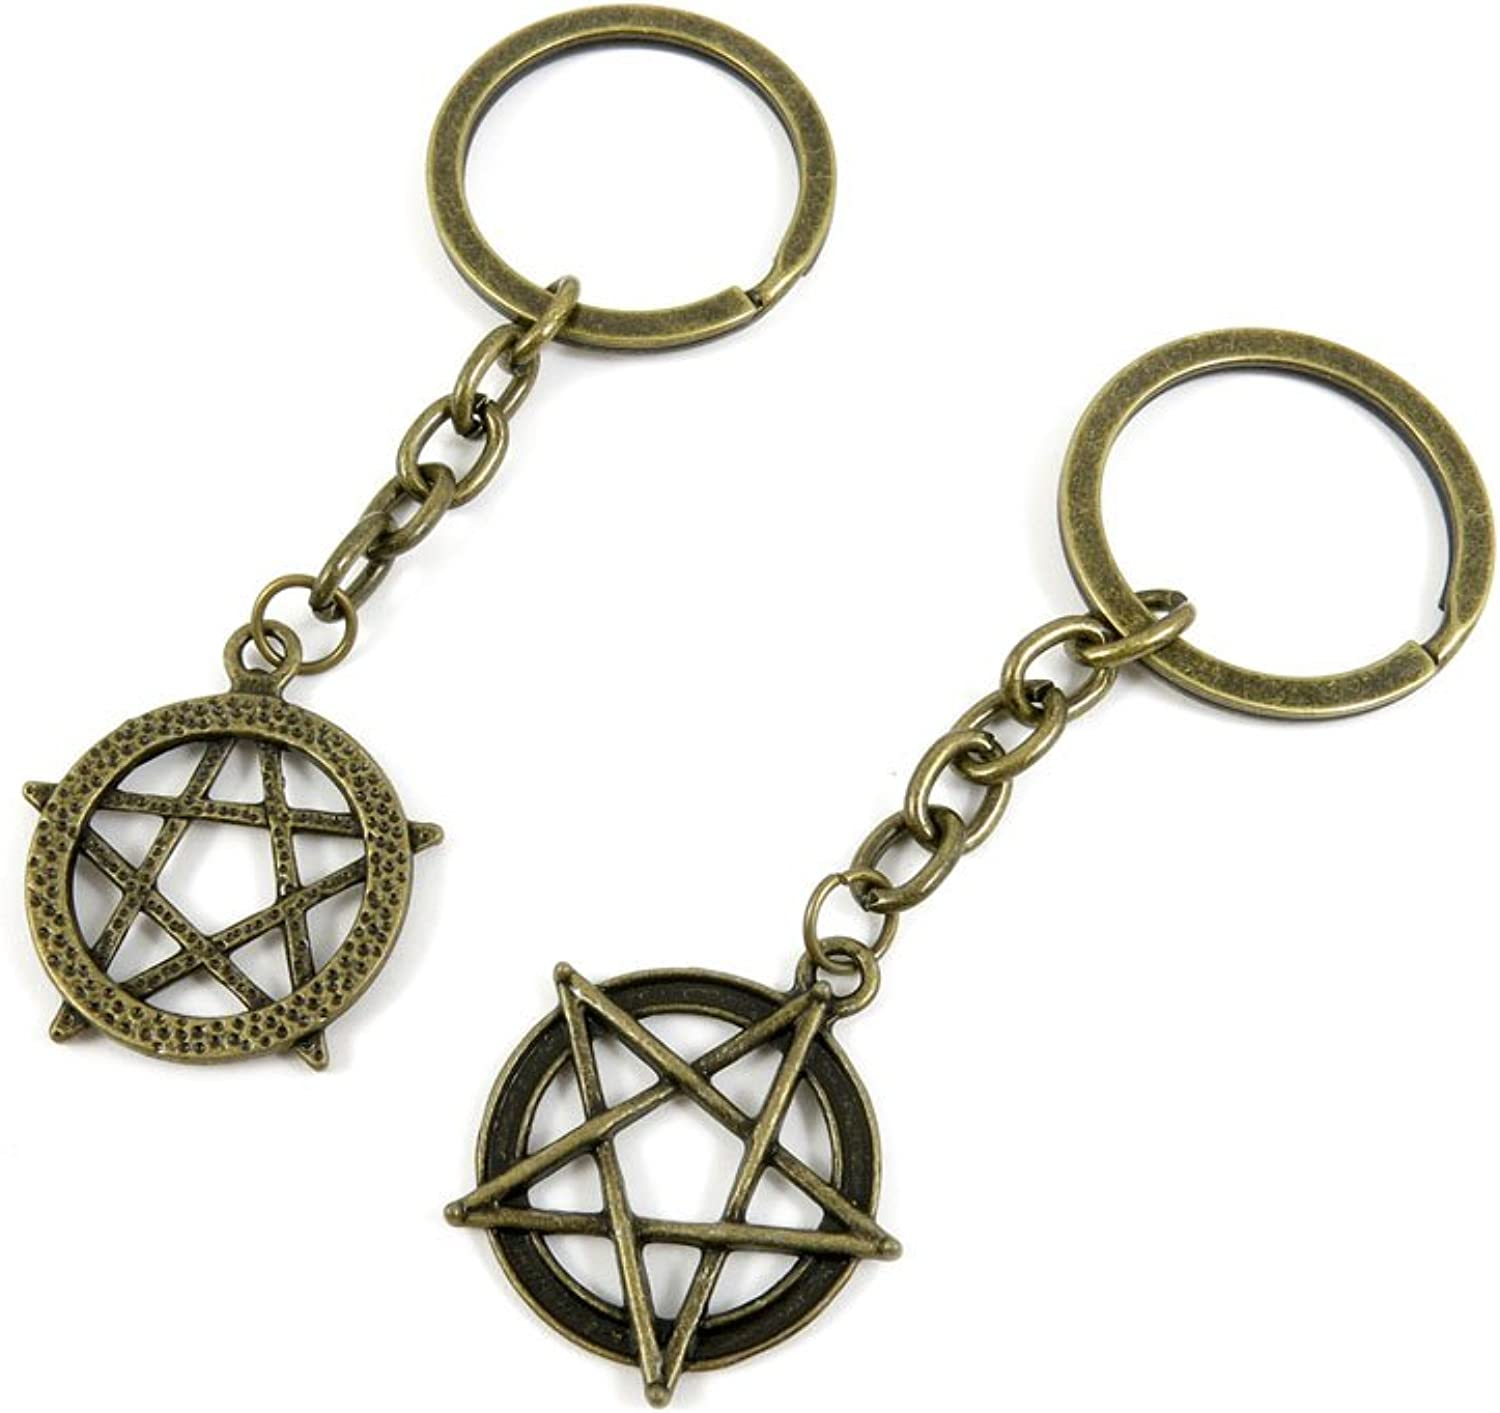 190 Pieces Fashion Jewelry Keyring Keychain Door Car Key Tag Ring Chain Supplier Supply Wholesale Bulk Lots Y8WA8 Fivepointed Star